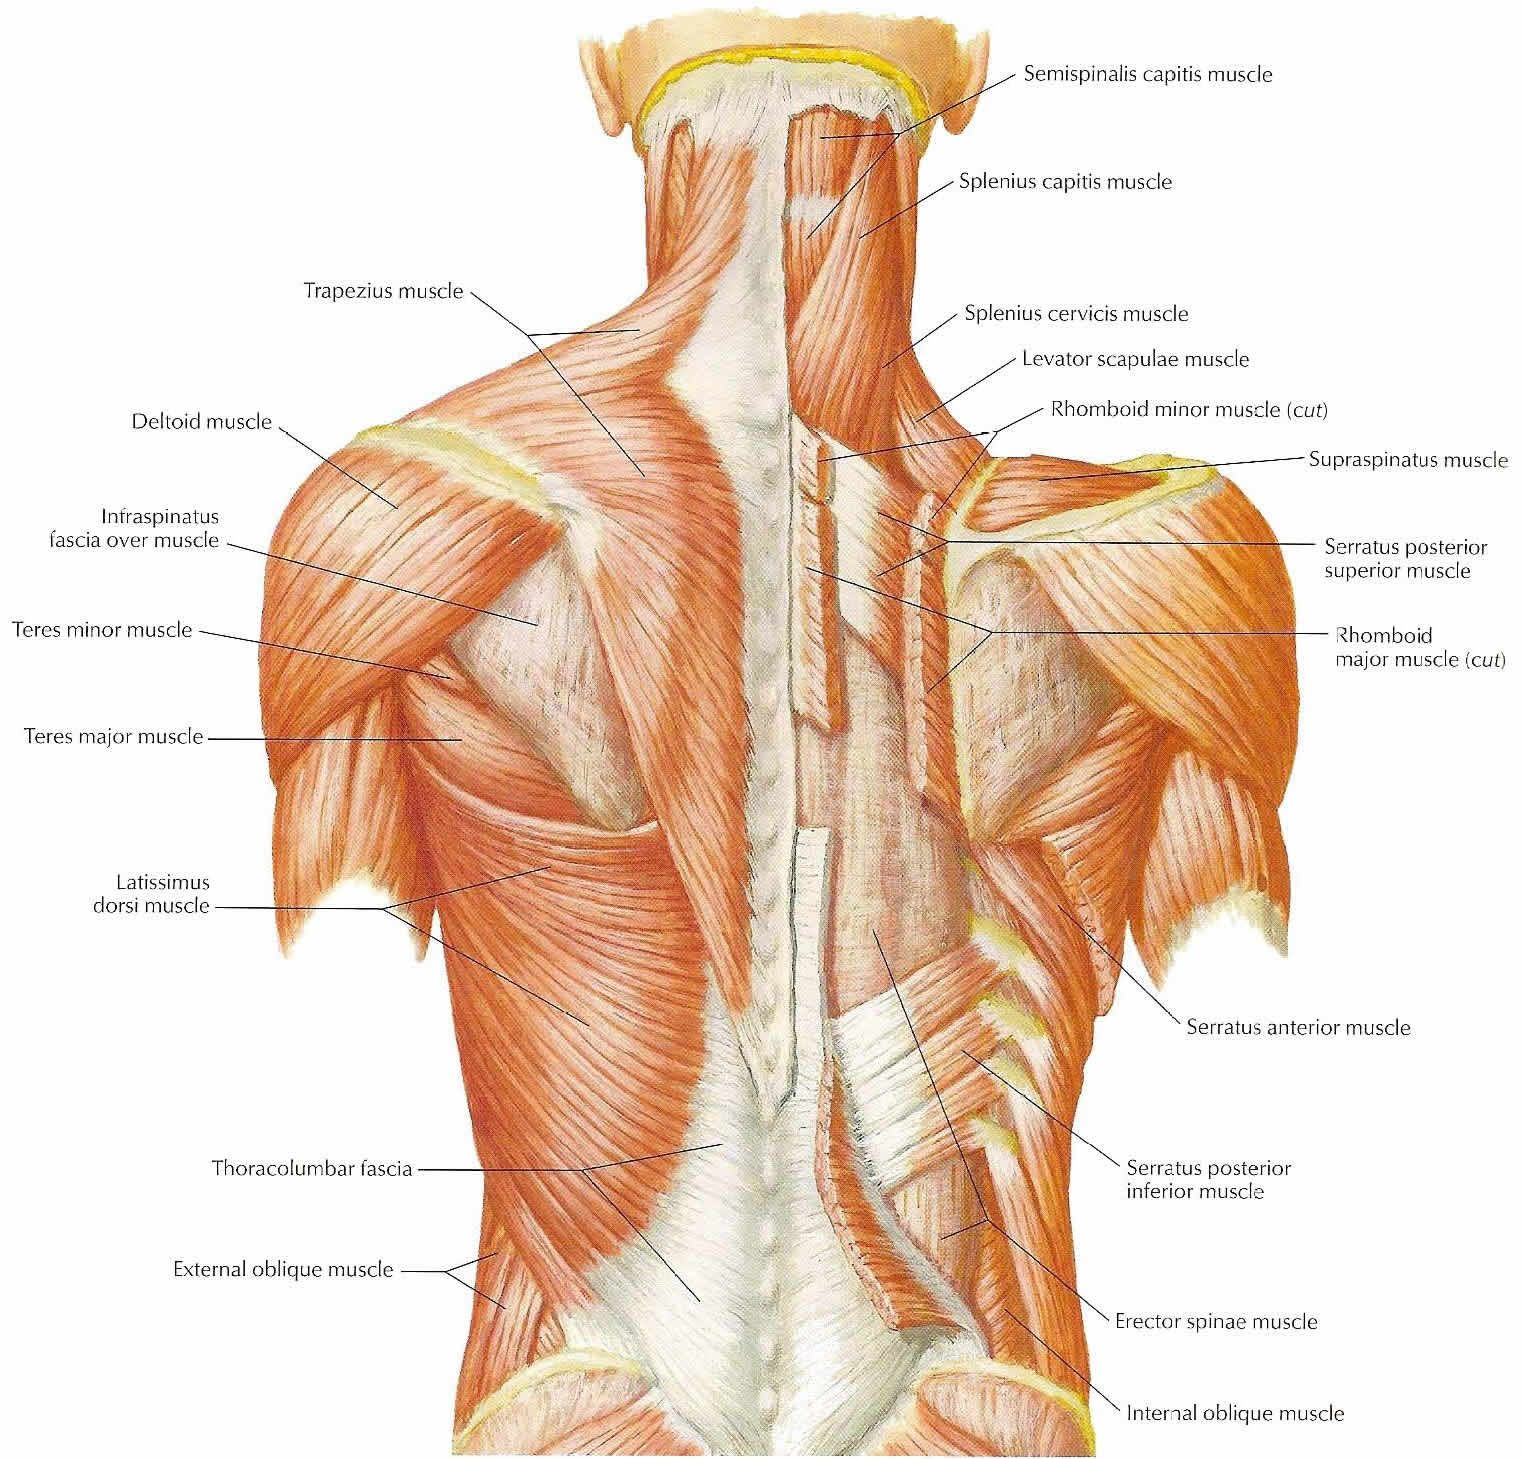 Human Anatomy and Physiology of Muscles Online on HubPages | School ...